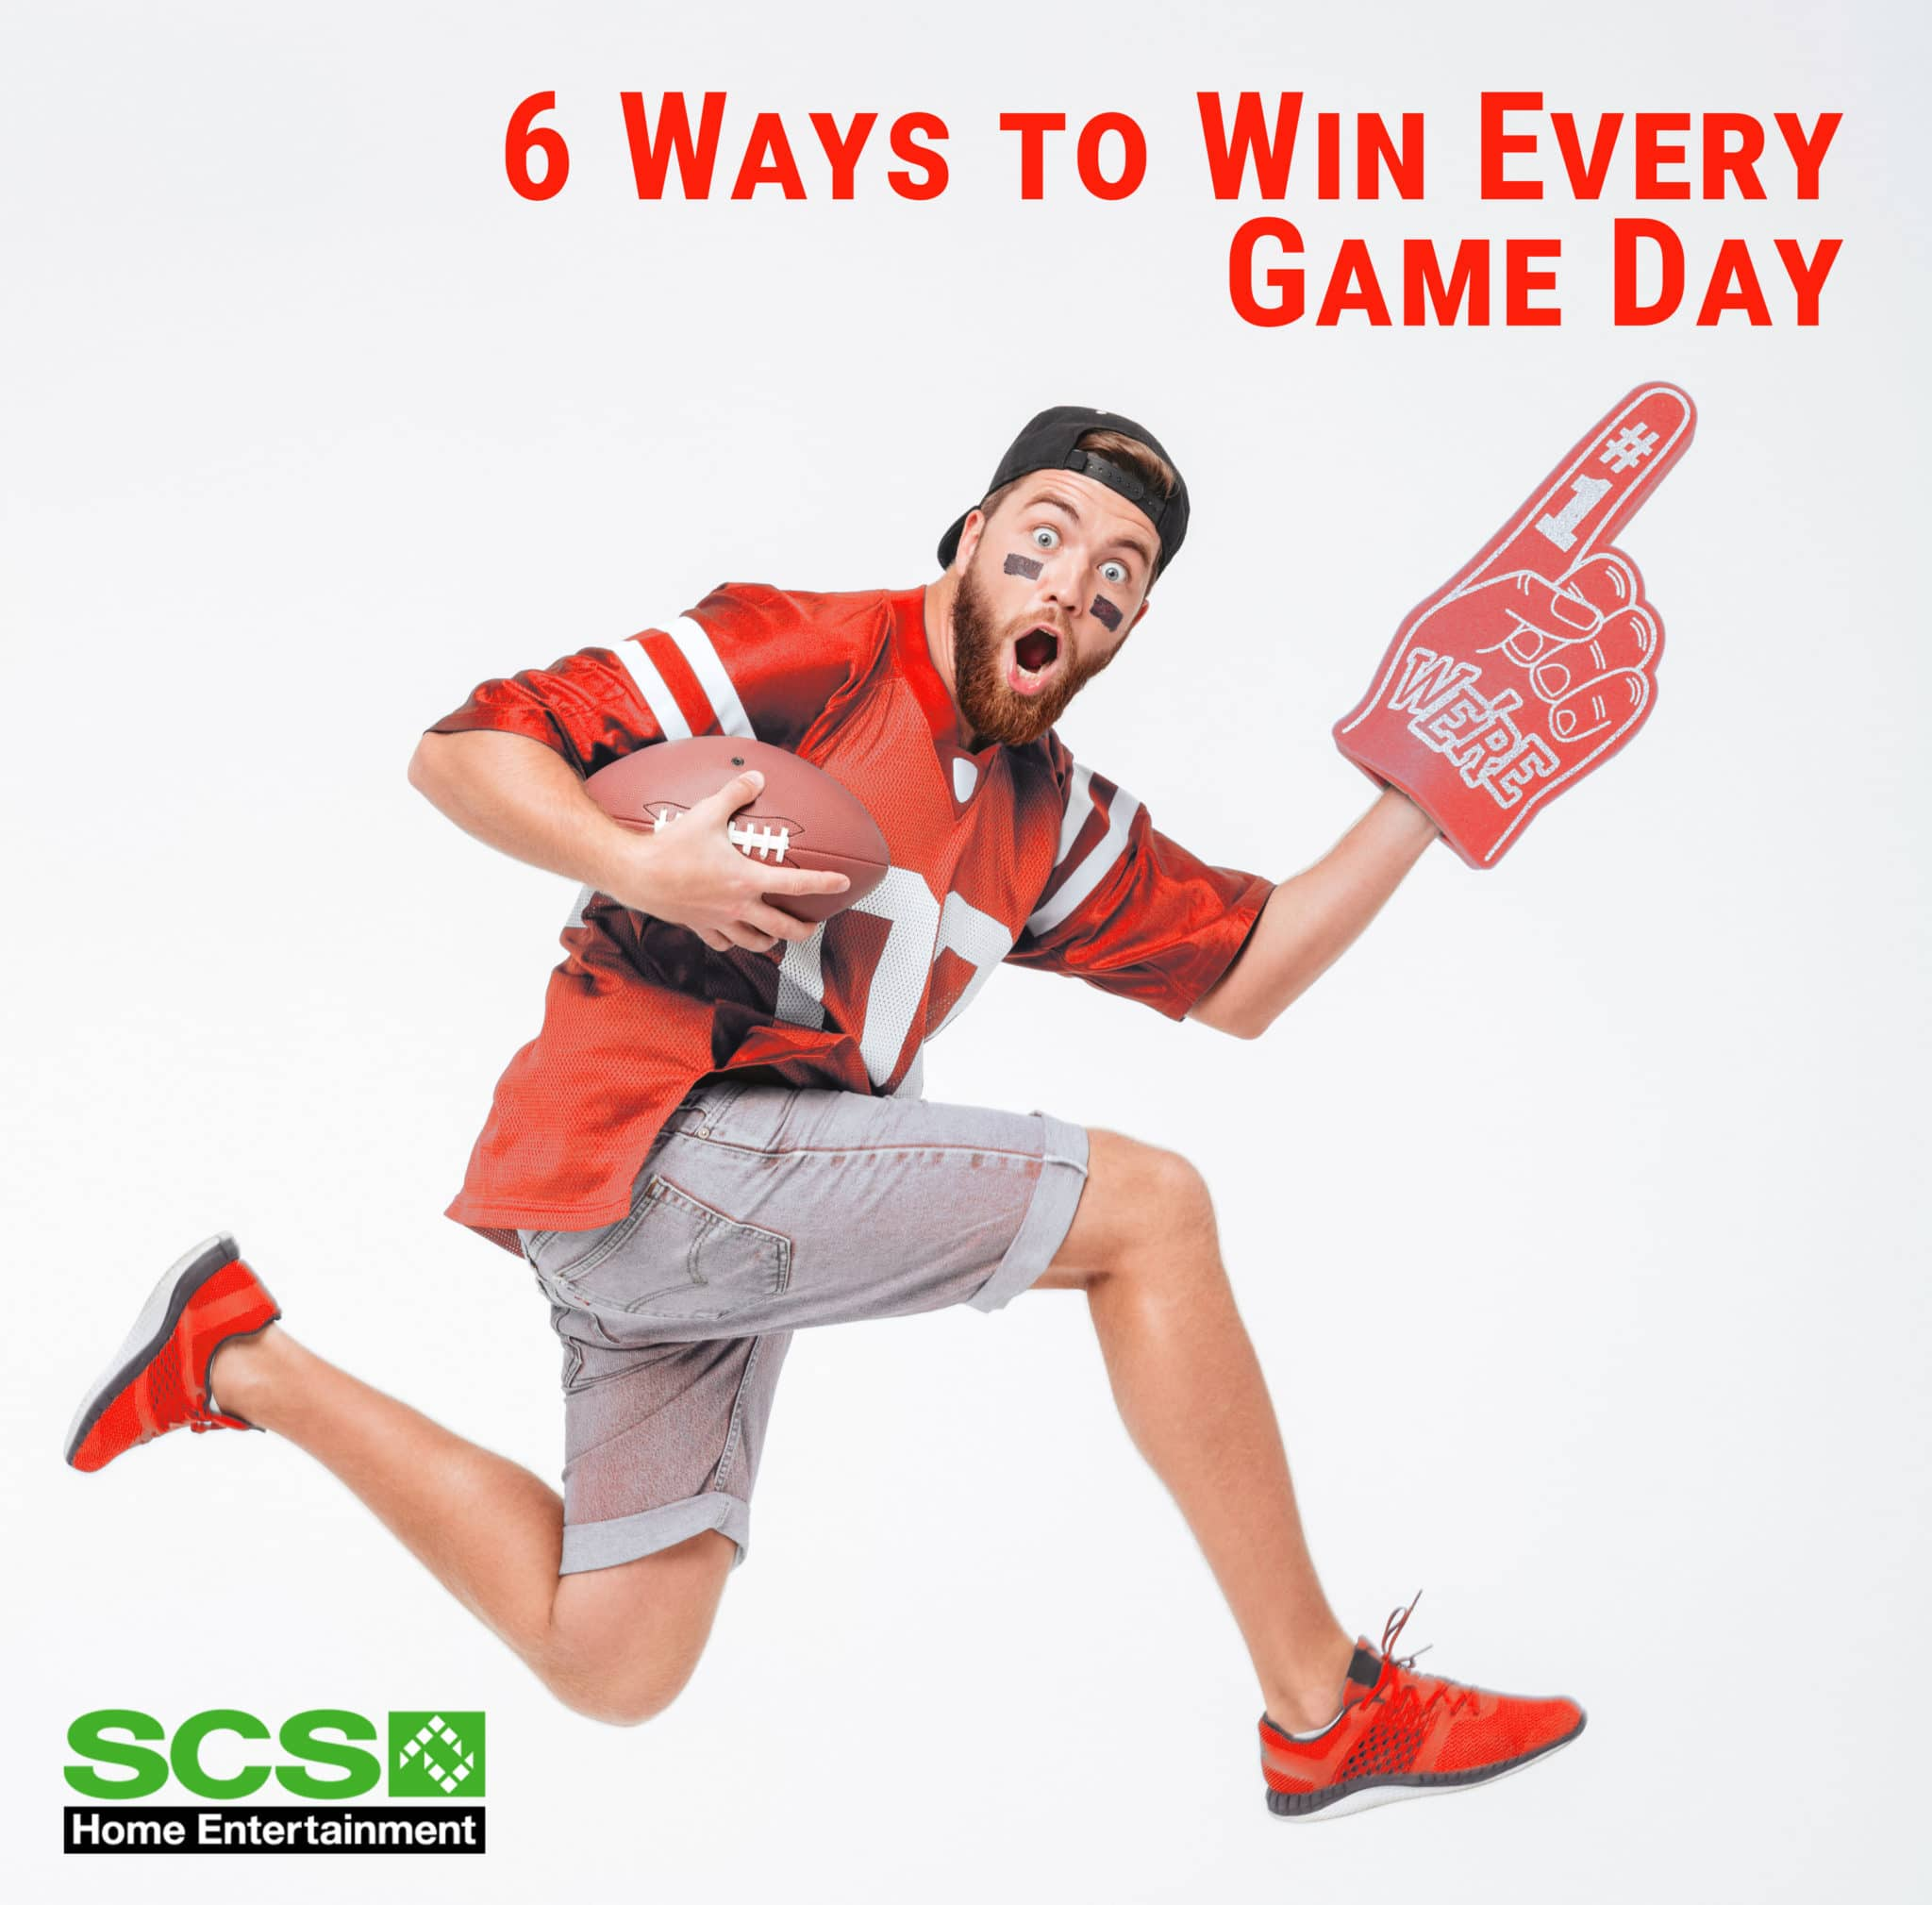 6 Ways To Win Every Game Day